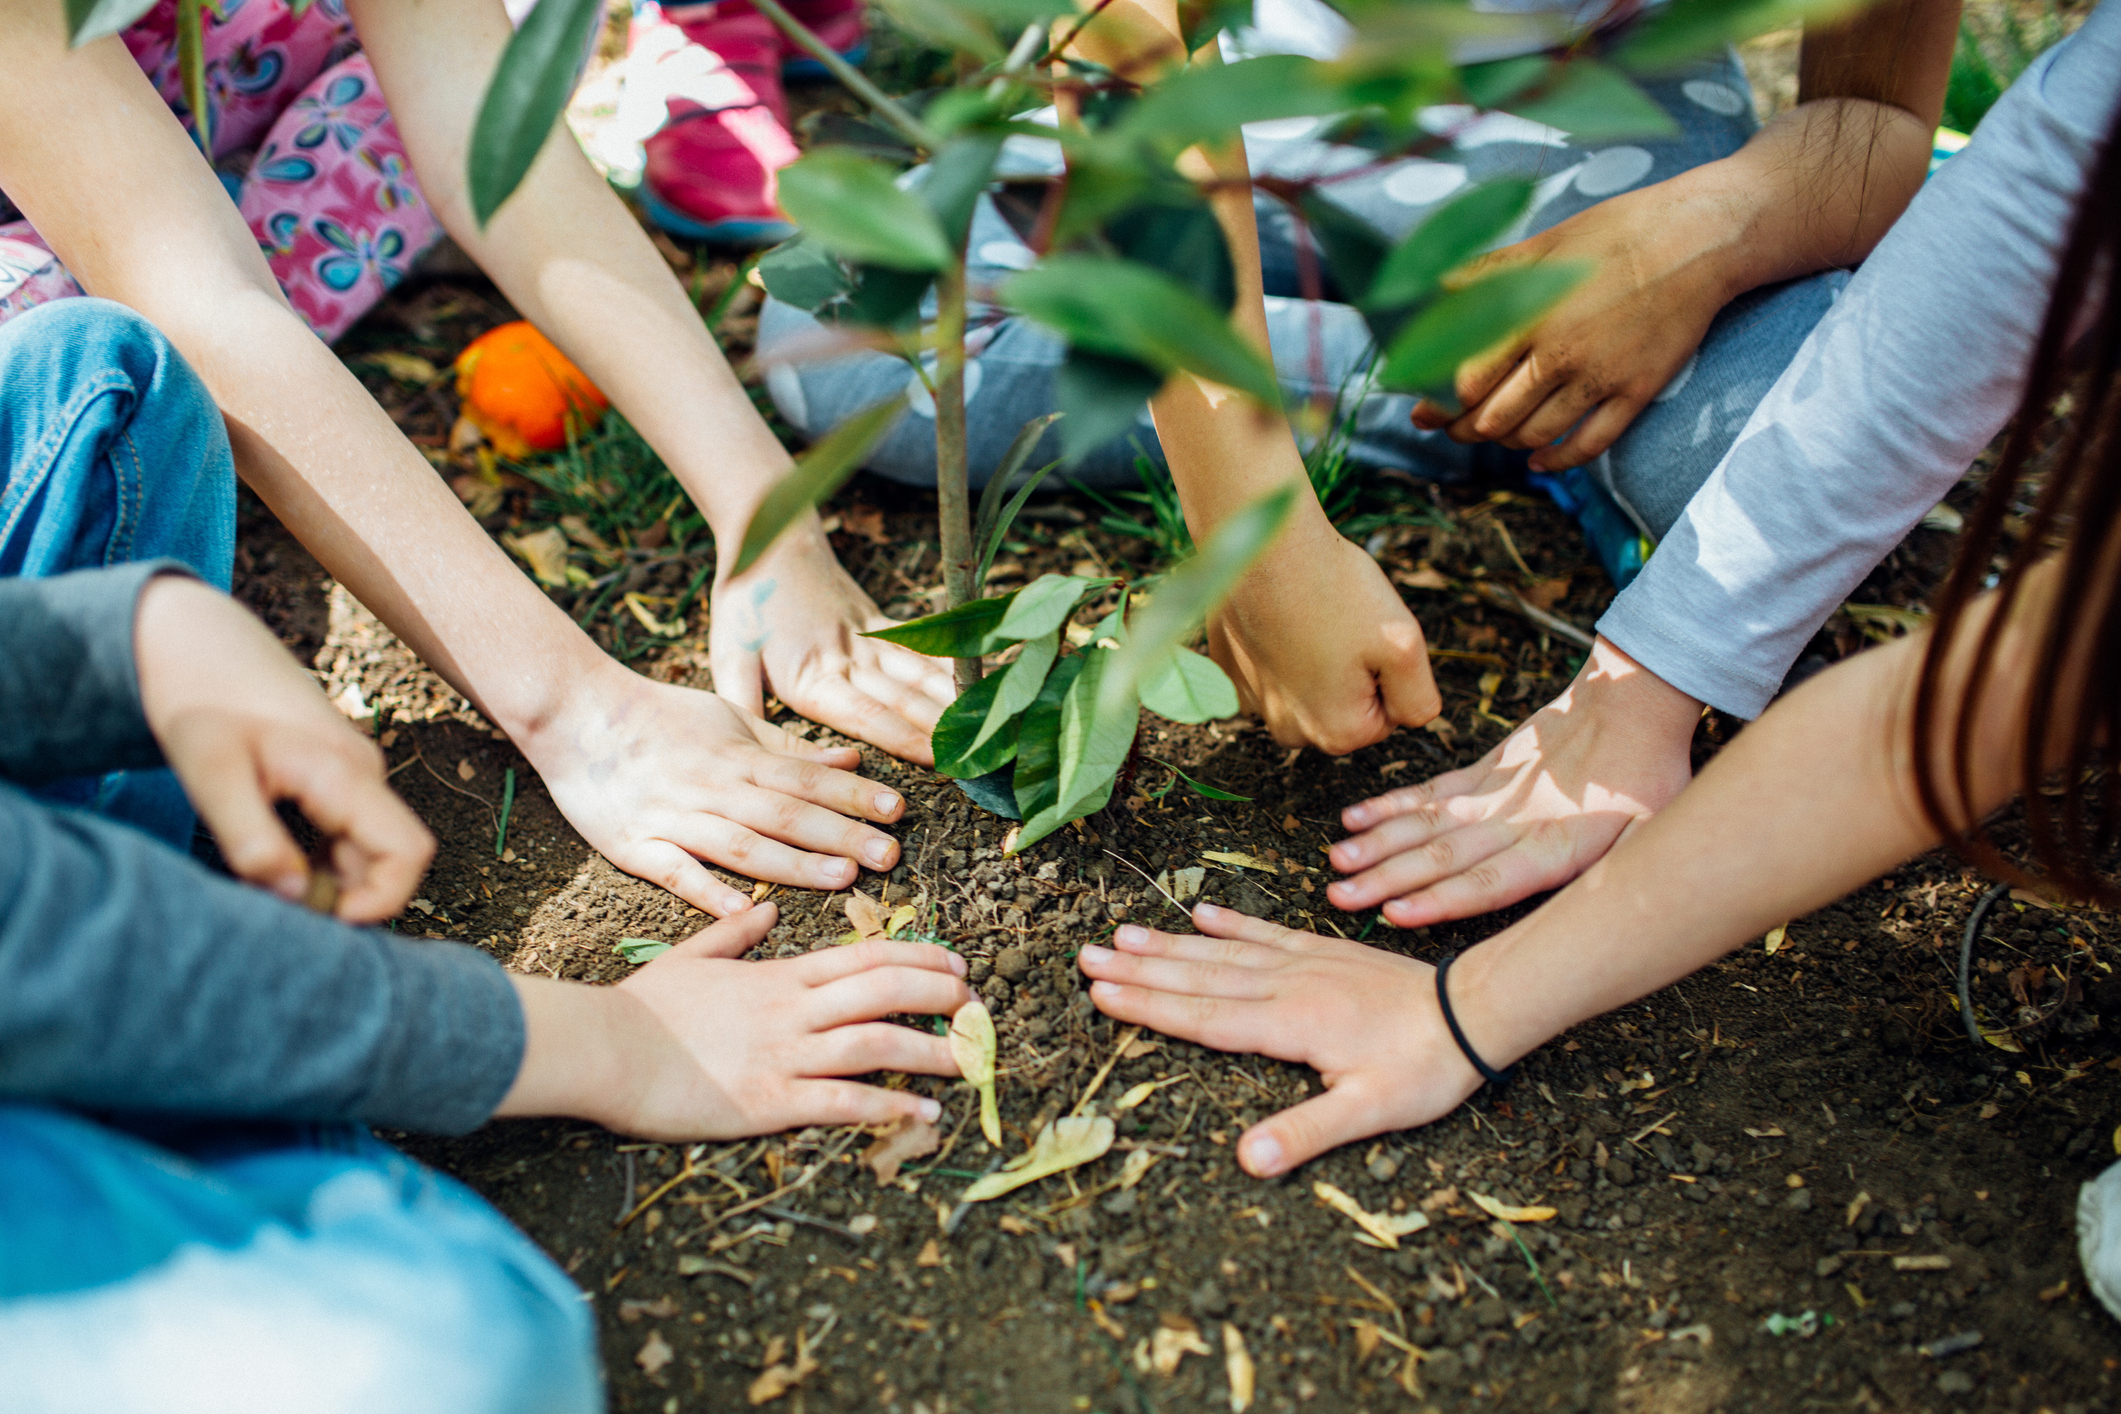 How to Celebrate Earth Day at Home